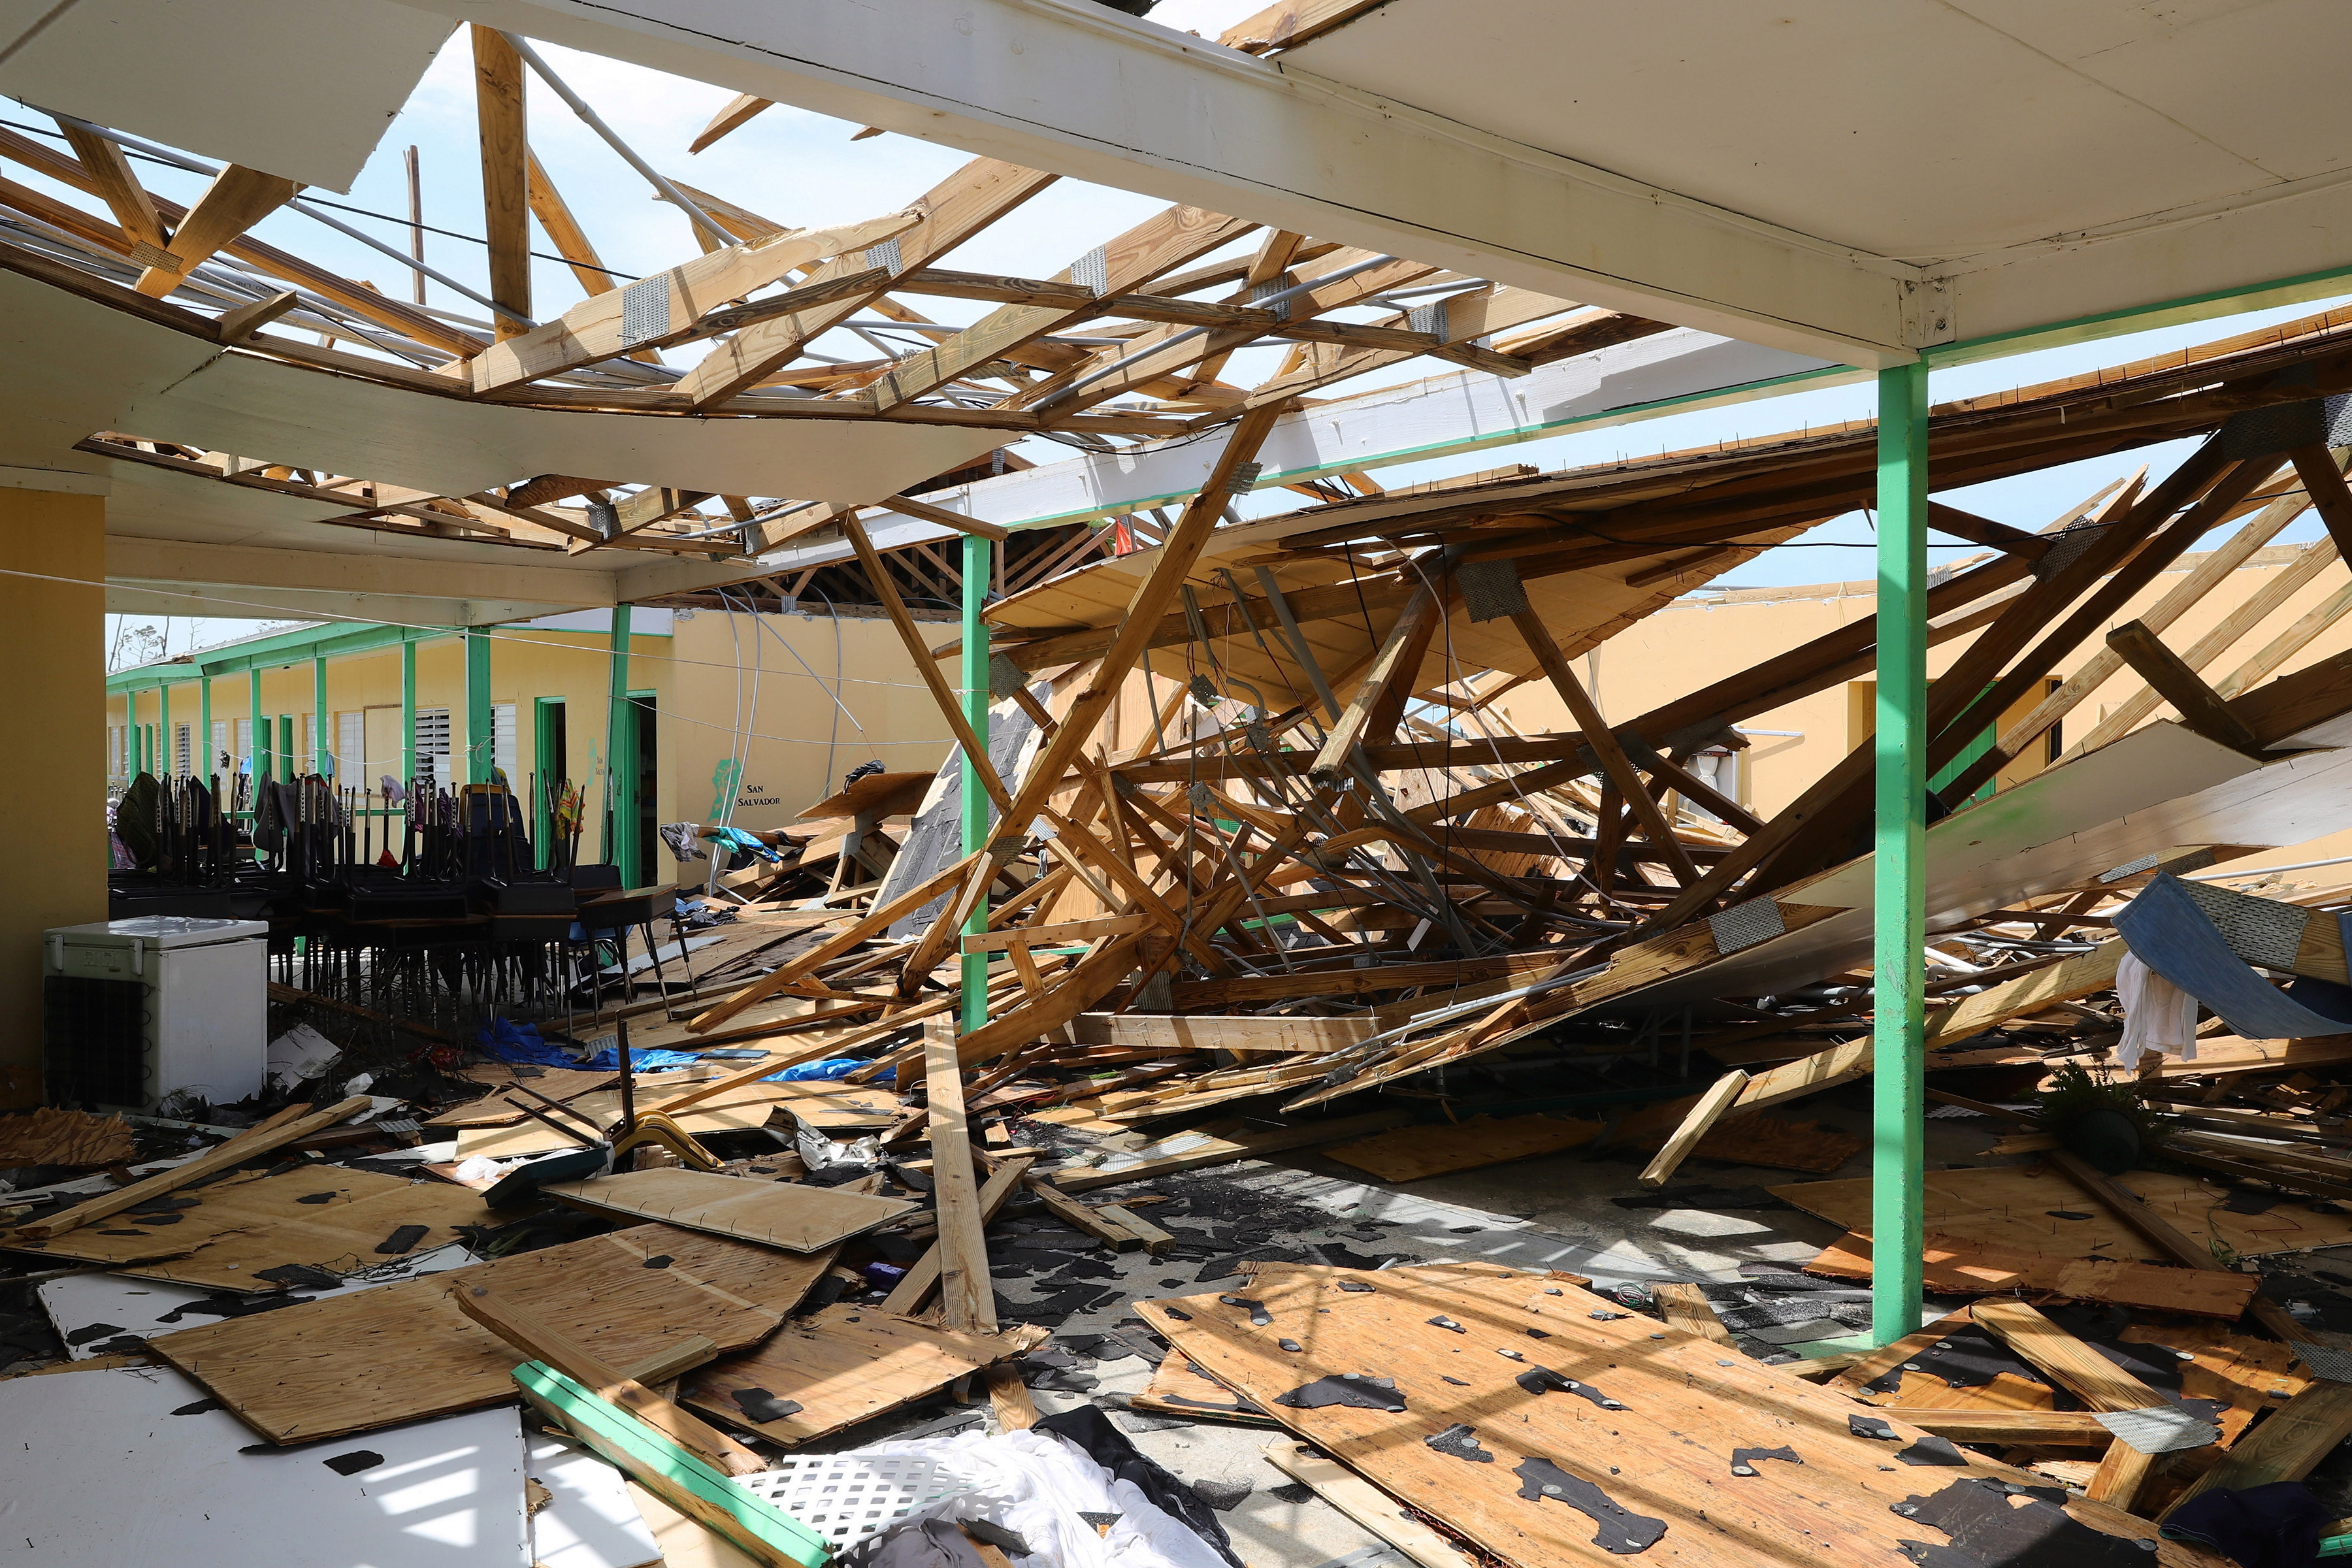 Hurricane Dorian tore buildings in the Bahamas apart with its 225mph winds